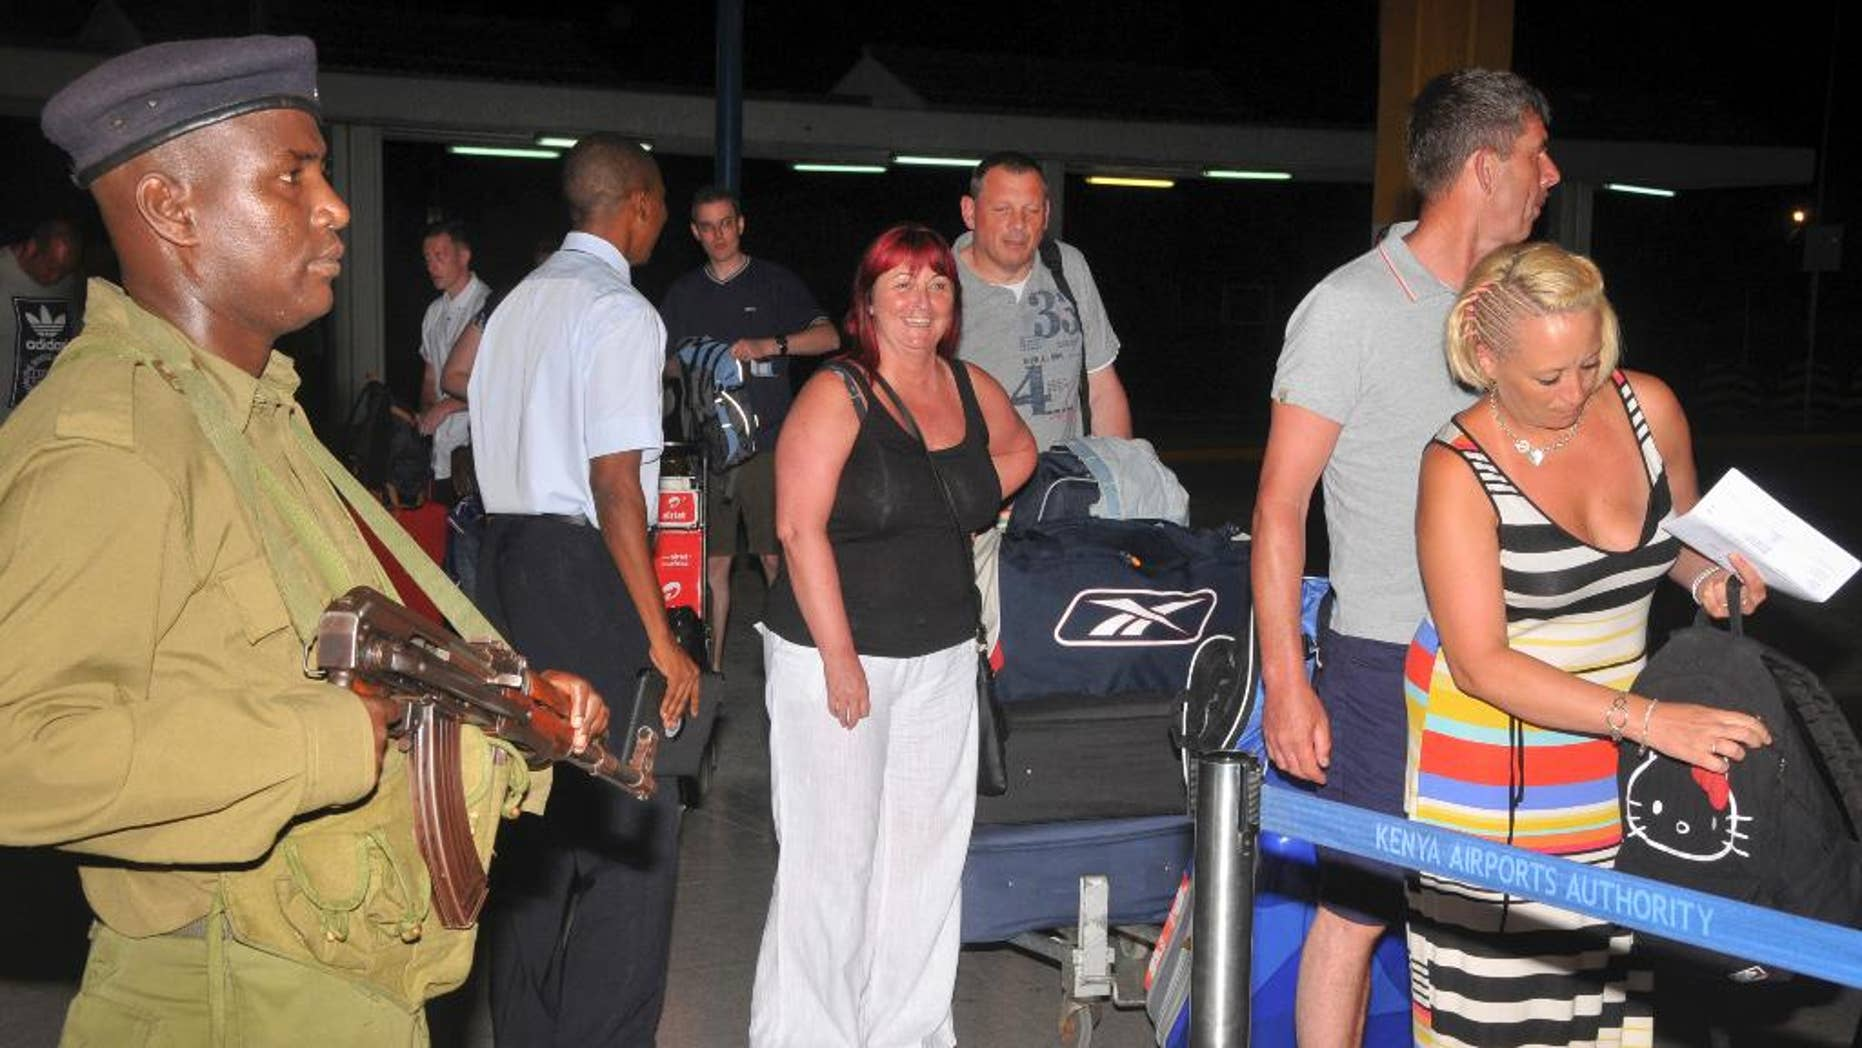 In this photo taken late Thursday, May 15, 2014, British tourists queue to prepare to leave the international airport in Mombasa, Kenya. A number of British tourists left the country by charter flight Thursday following a new travel advisory from the British Foreign and Commonwealth Office (FCO) advising against all but essential travel to Mombasa island. (AP Photo)